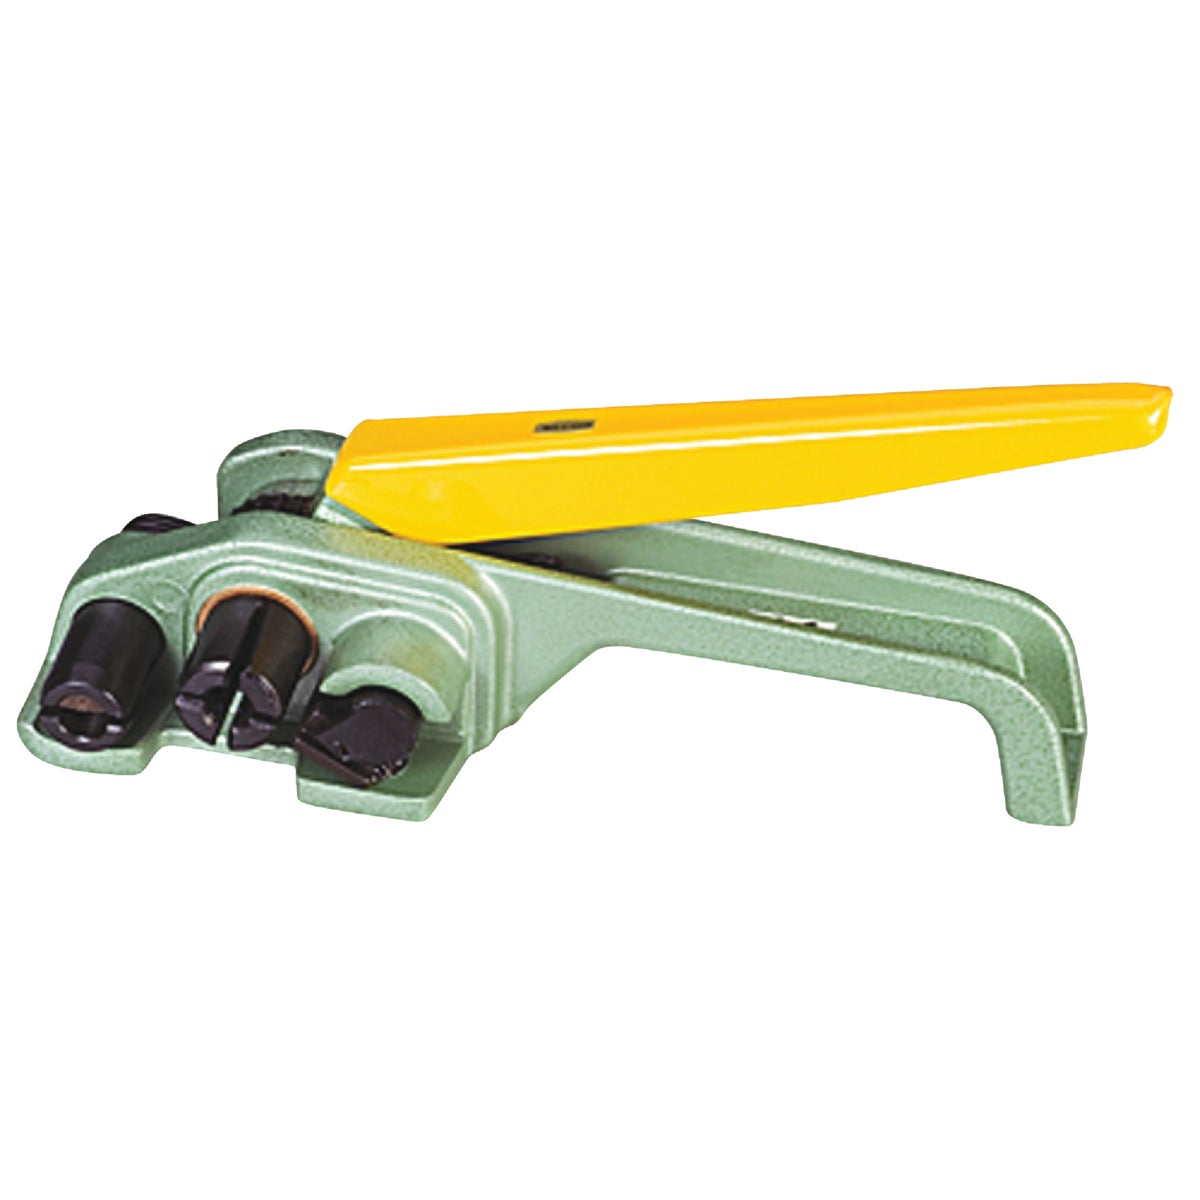 STRAPPING TENSIONER - S1100T by Nifty Products